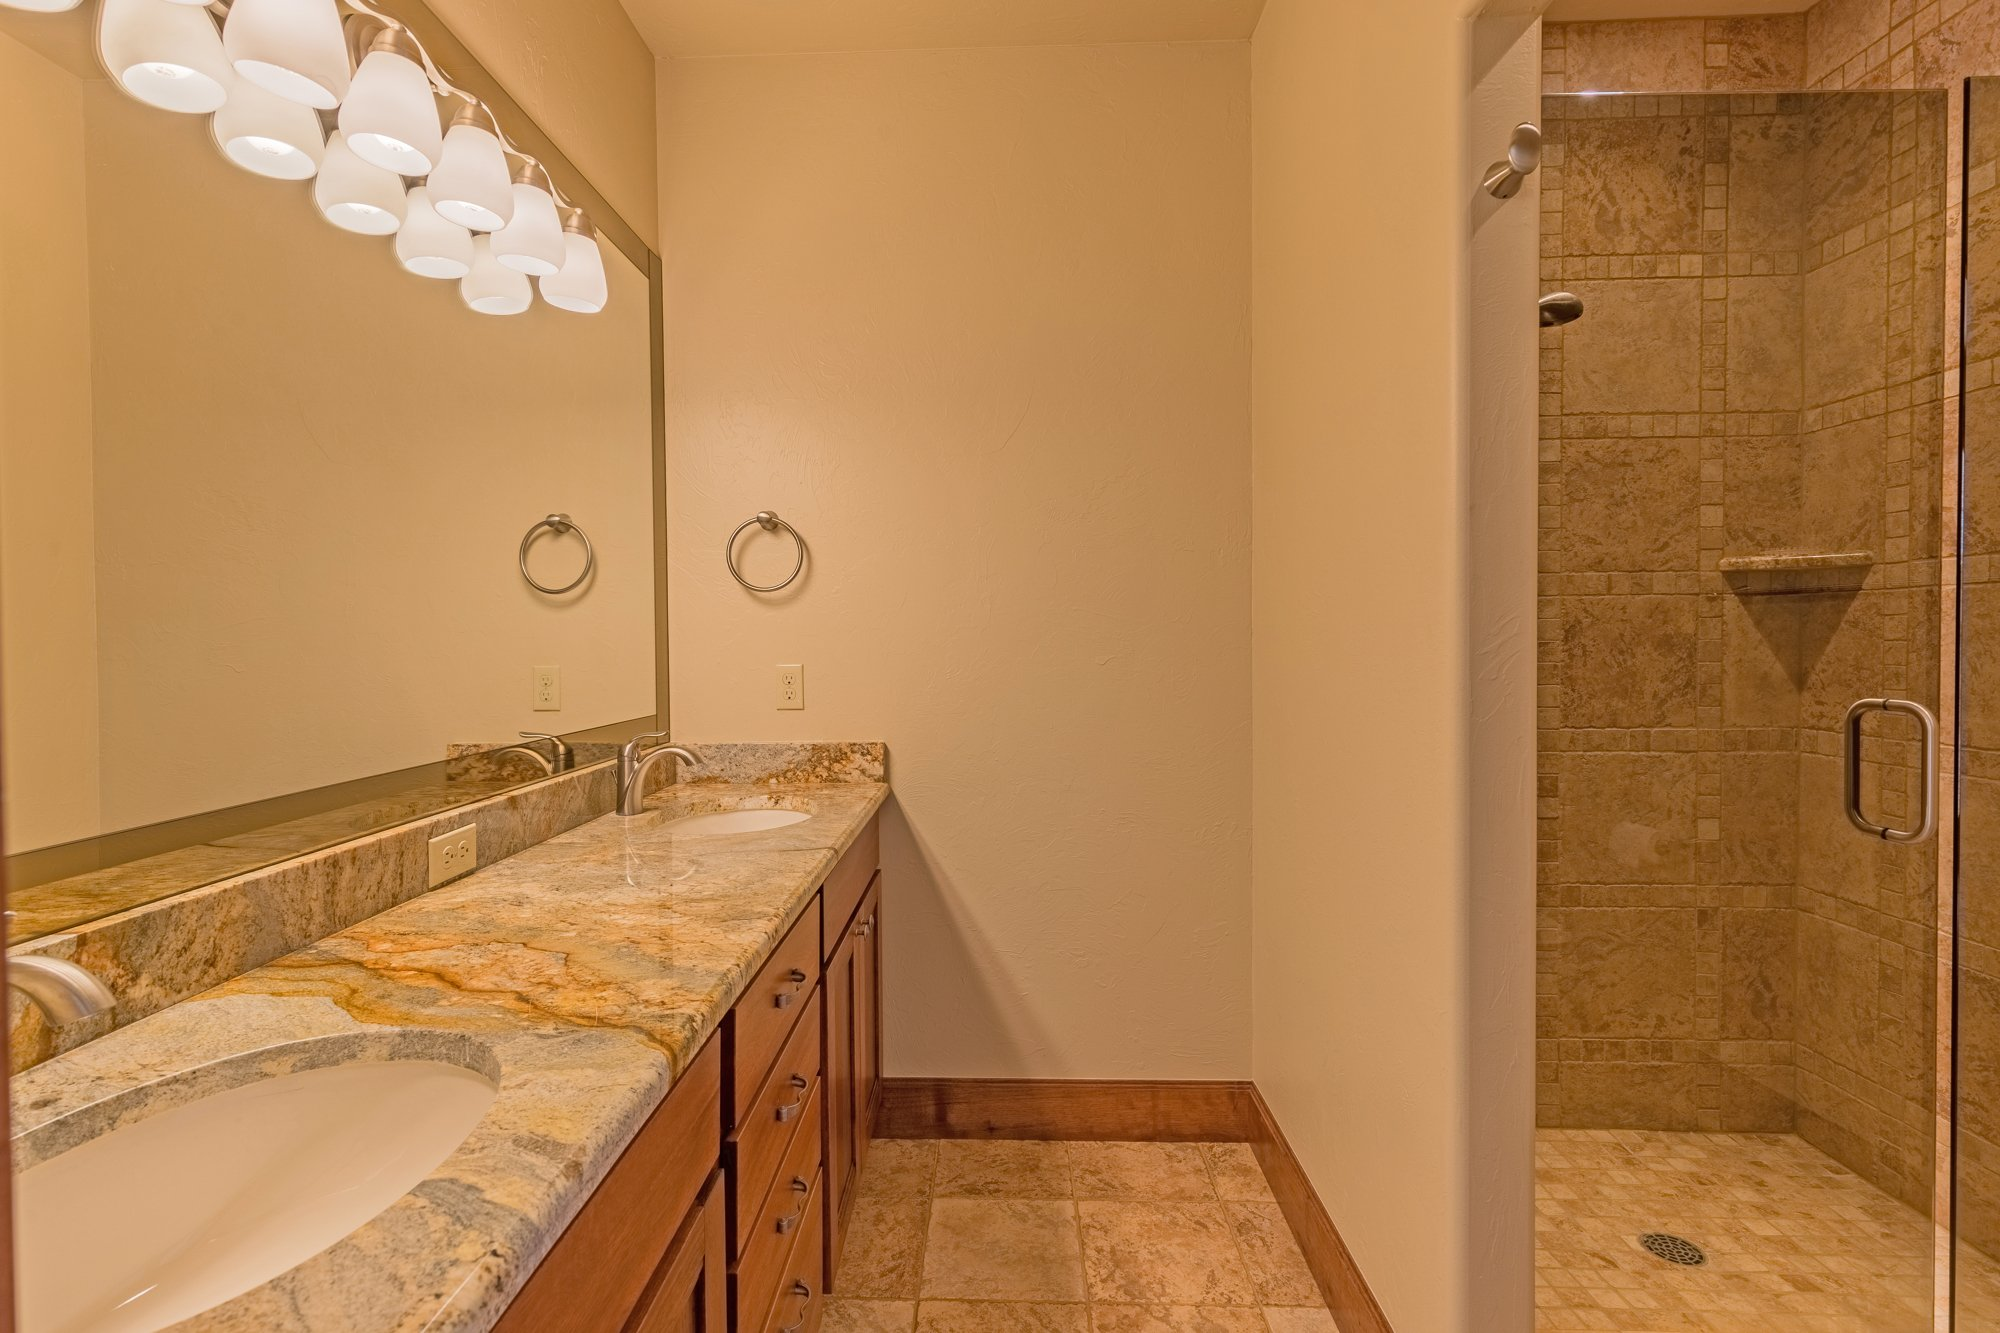 Bathroom with Shower - 924 Courthouse Peak Lane Montrose, CO 81403 - Atha Team Golf Luxury Real Estate